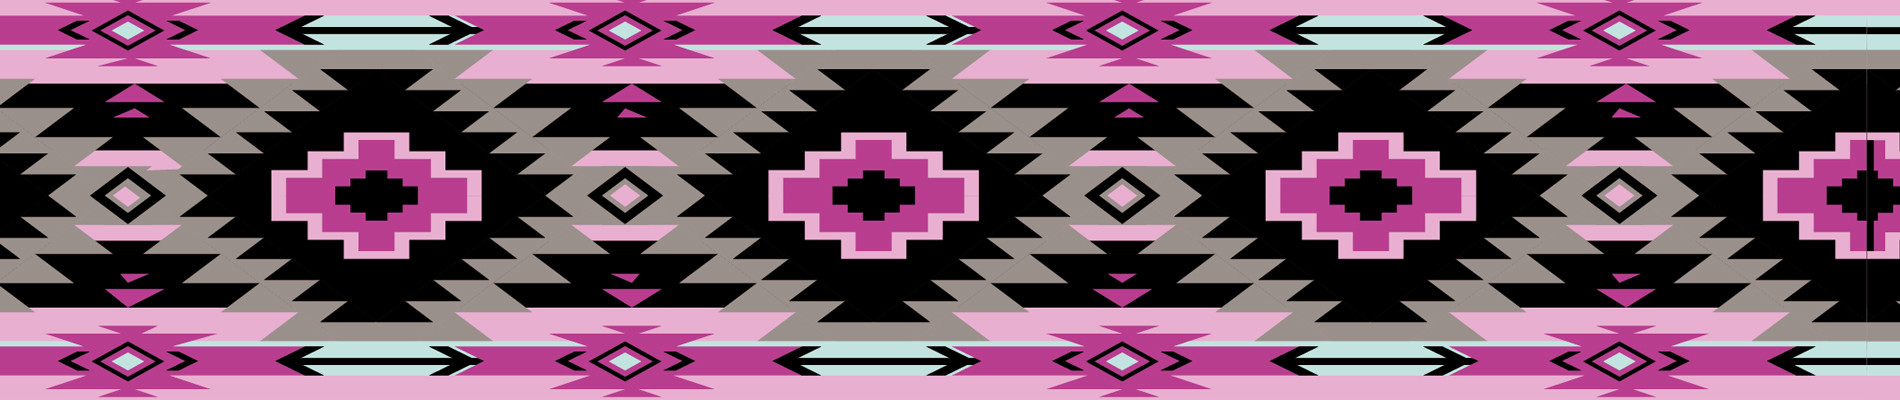 Native Pink/Black